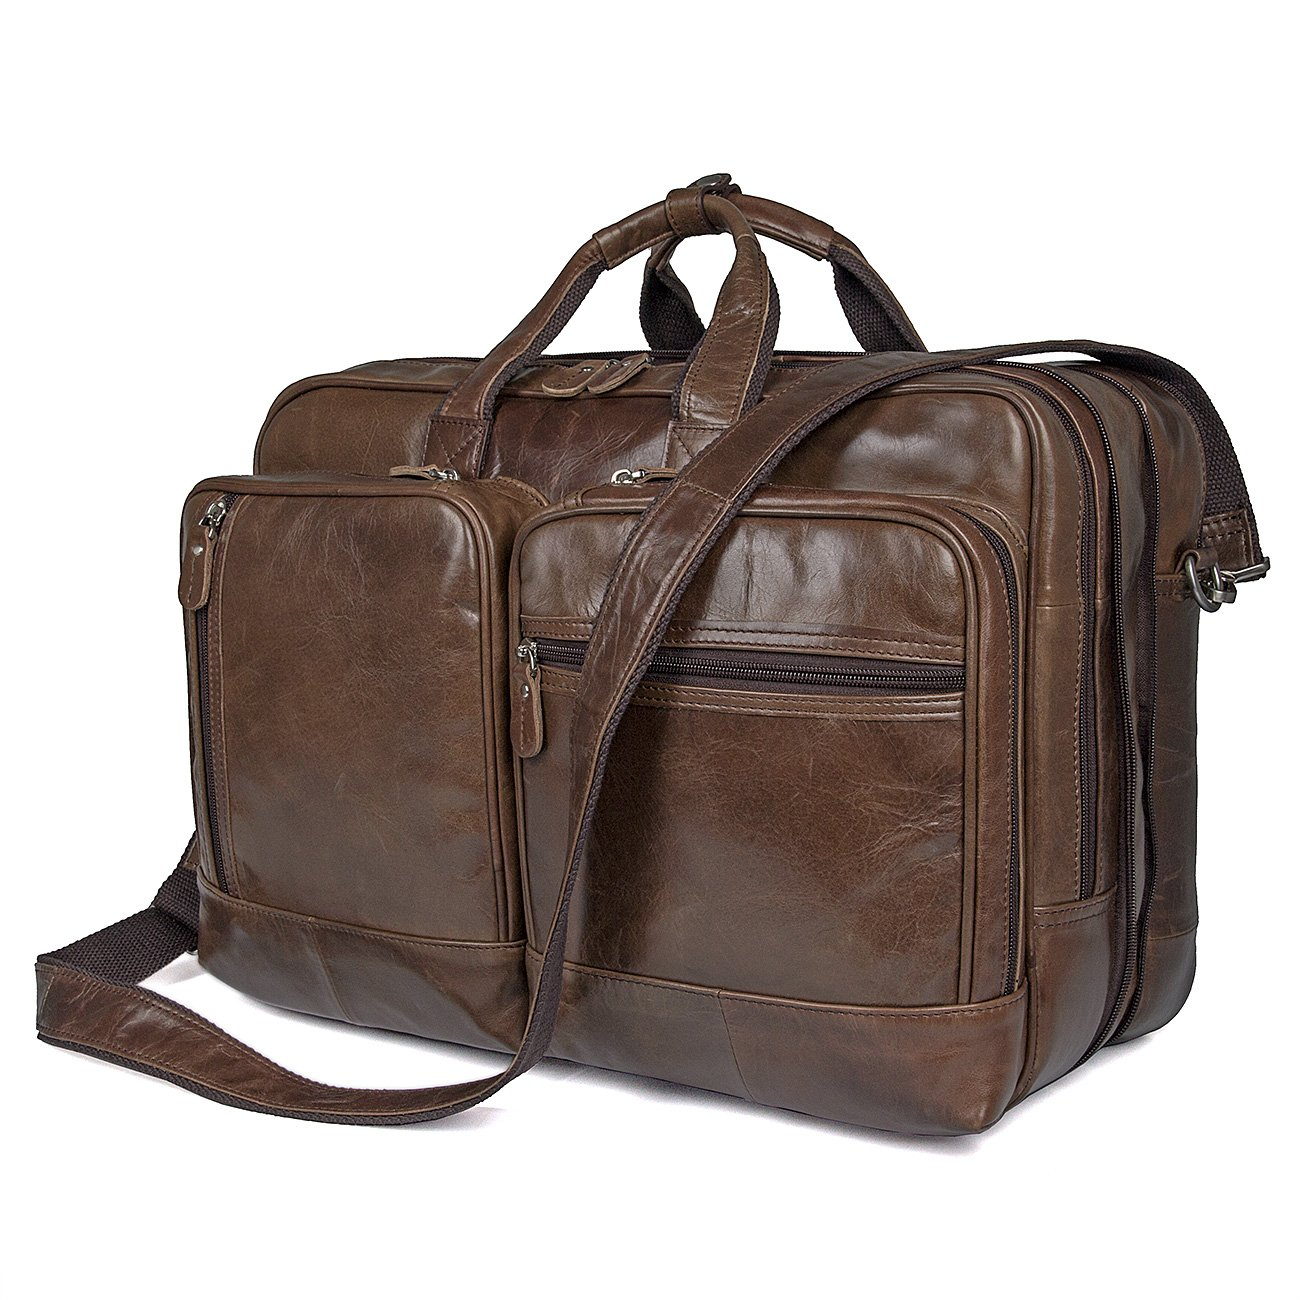 Polare Full Grain Leather 16.5'' Expandable Business Briefcase Laptop Travel Bag by Polare